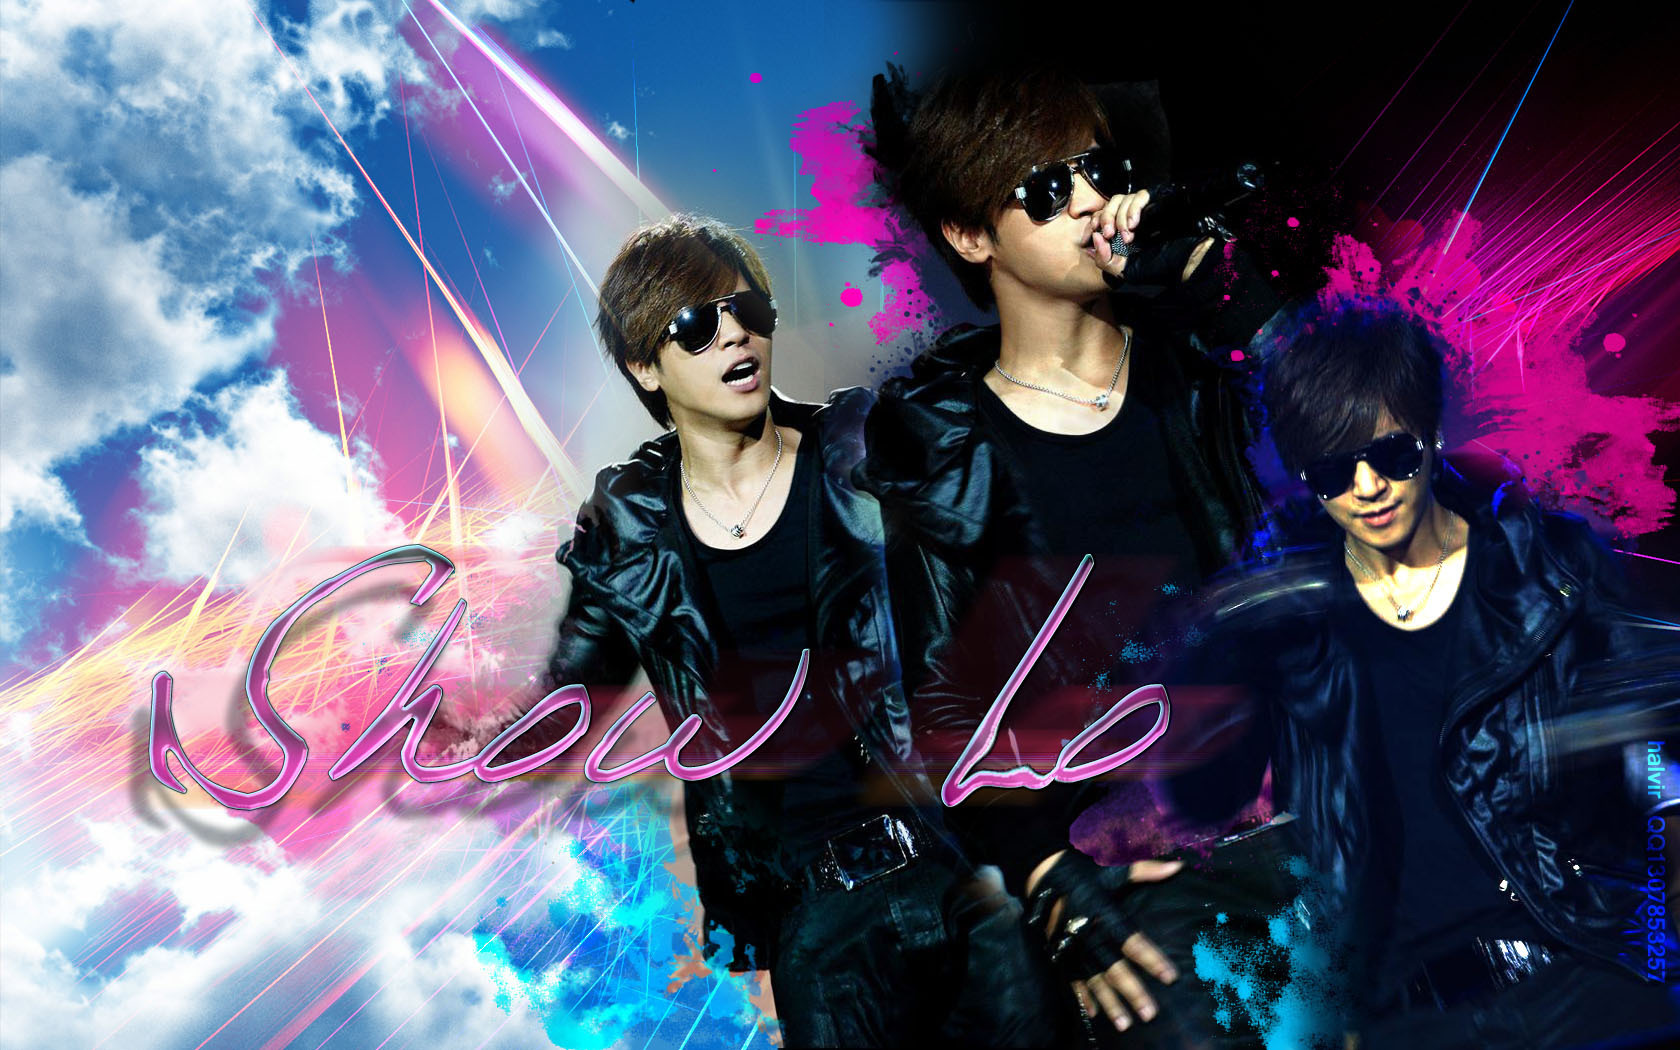 wallpaper Show Luo - Show Luo Wallpaper (17172095) - Fanpop: www.fanpop.com/clubs/show-luo/images/17172095/title/wallpaper-show...